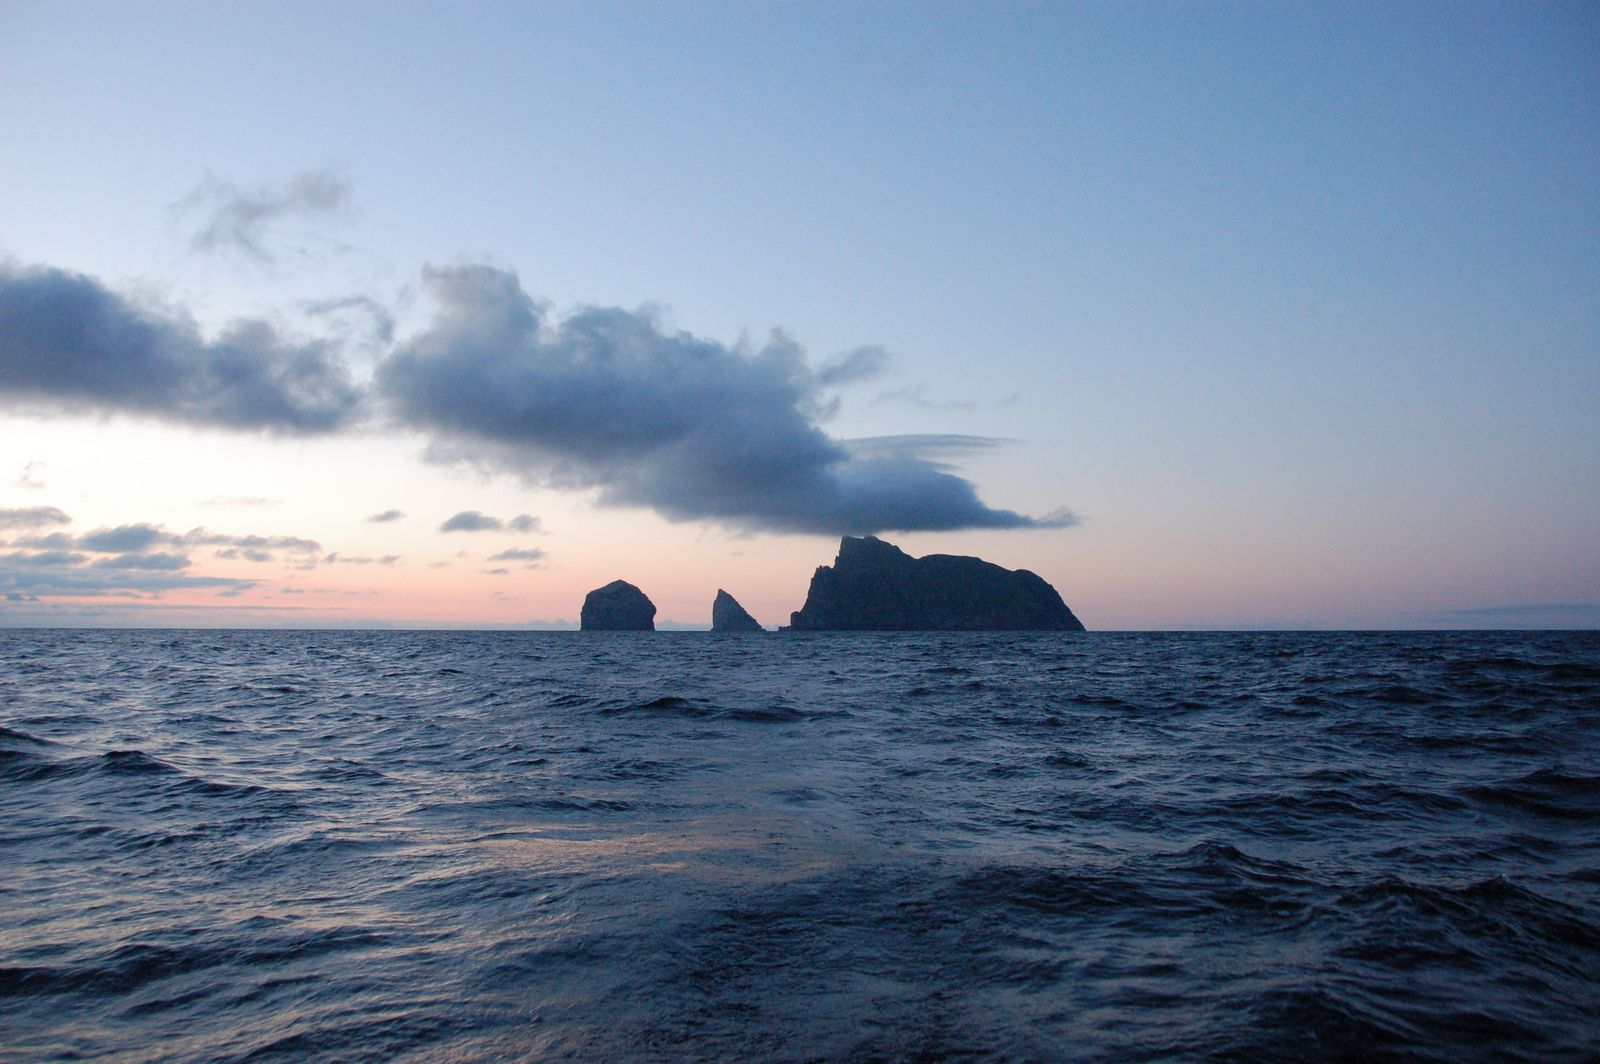 The northern St Kilda group - Stac Lee, Stac an Armin and Boreray - seen from near Village Bay. Photo by Hillary Sillitto